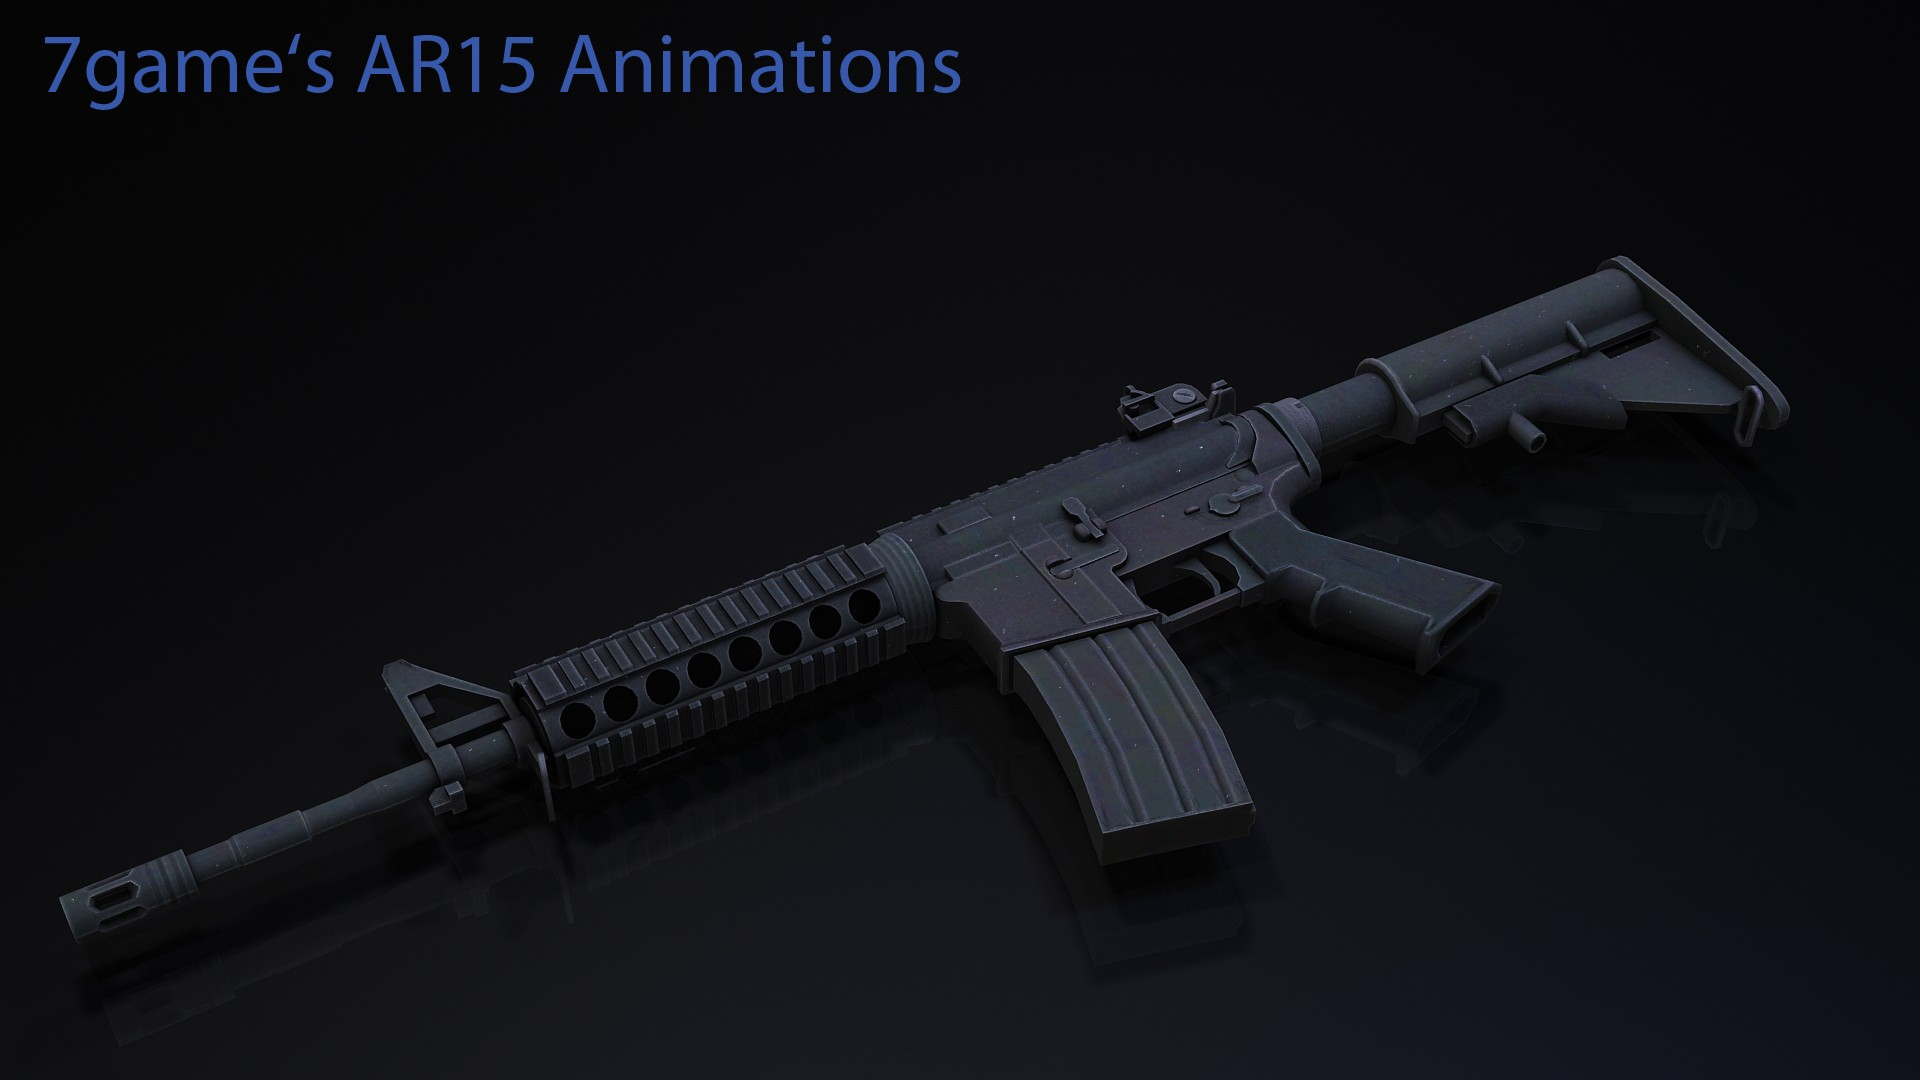 Arby26 AR15 On 7game's Anims | M4A1 для СSGO